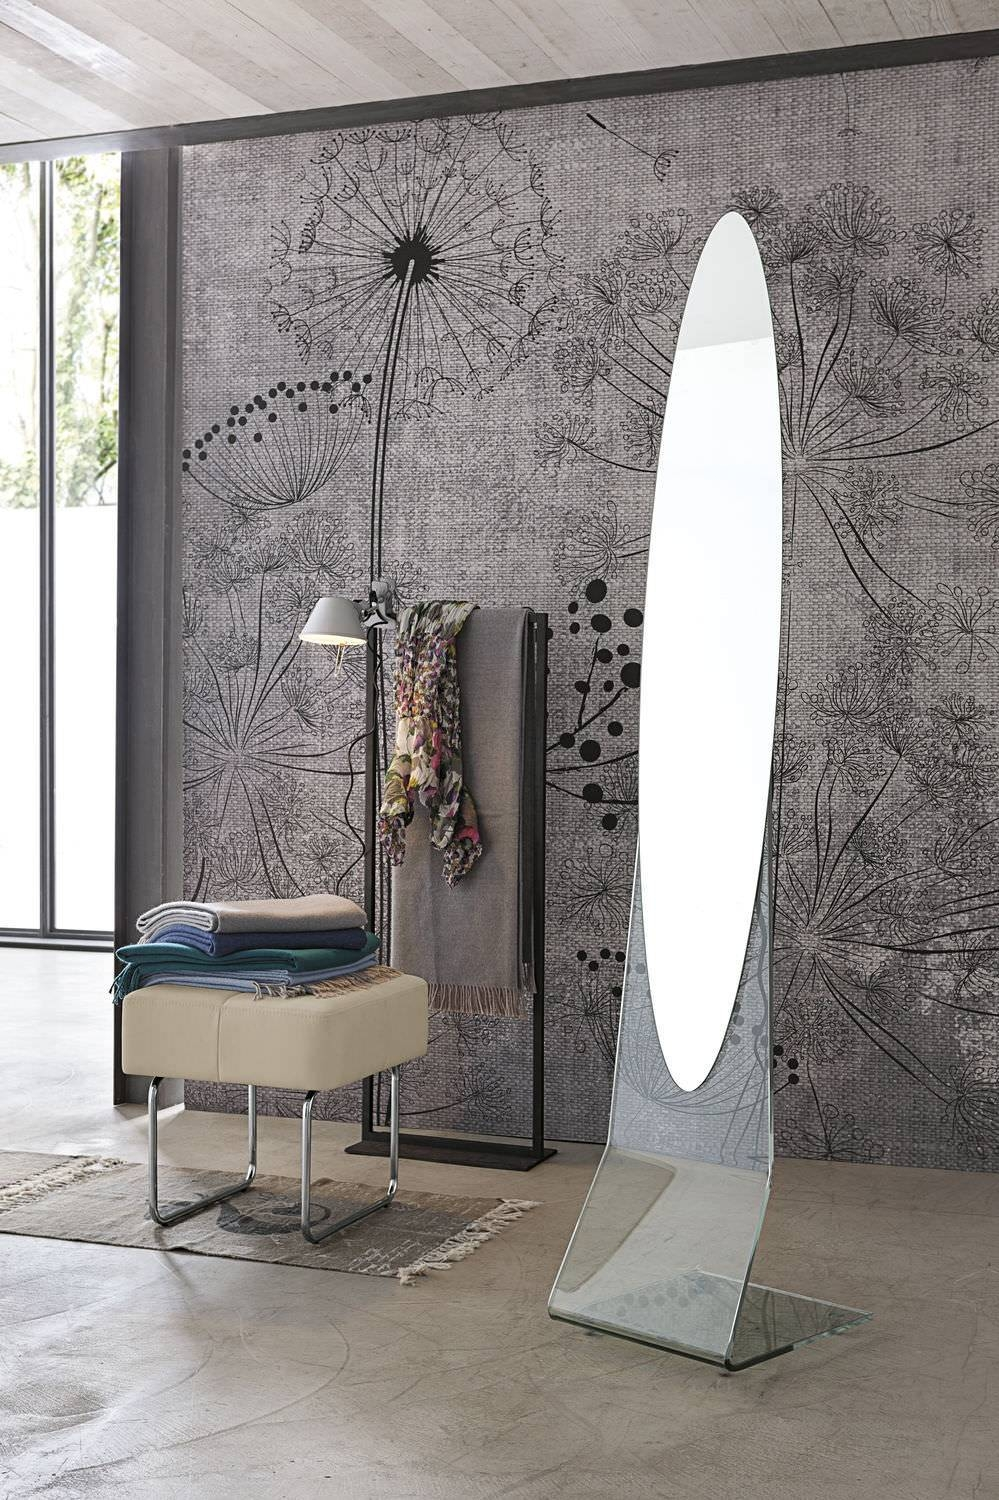 Free-Standing Mirror / Contemporary / Oval - Narciso - Target for Oval Freestanding Mirrors (Image 13 of 25)